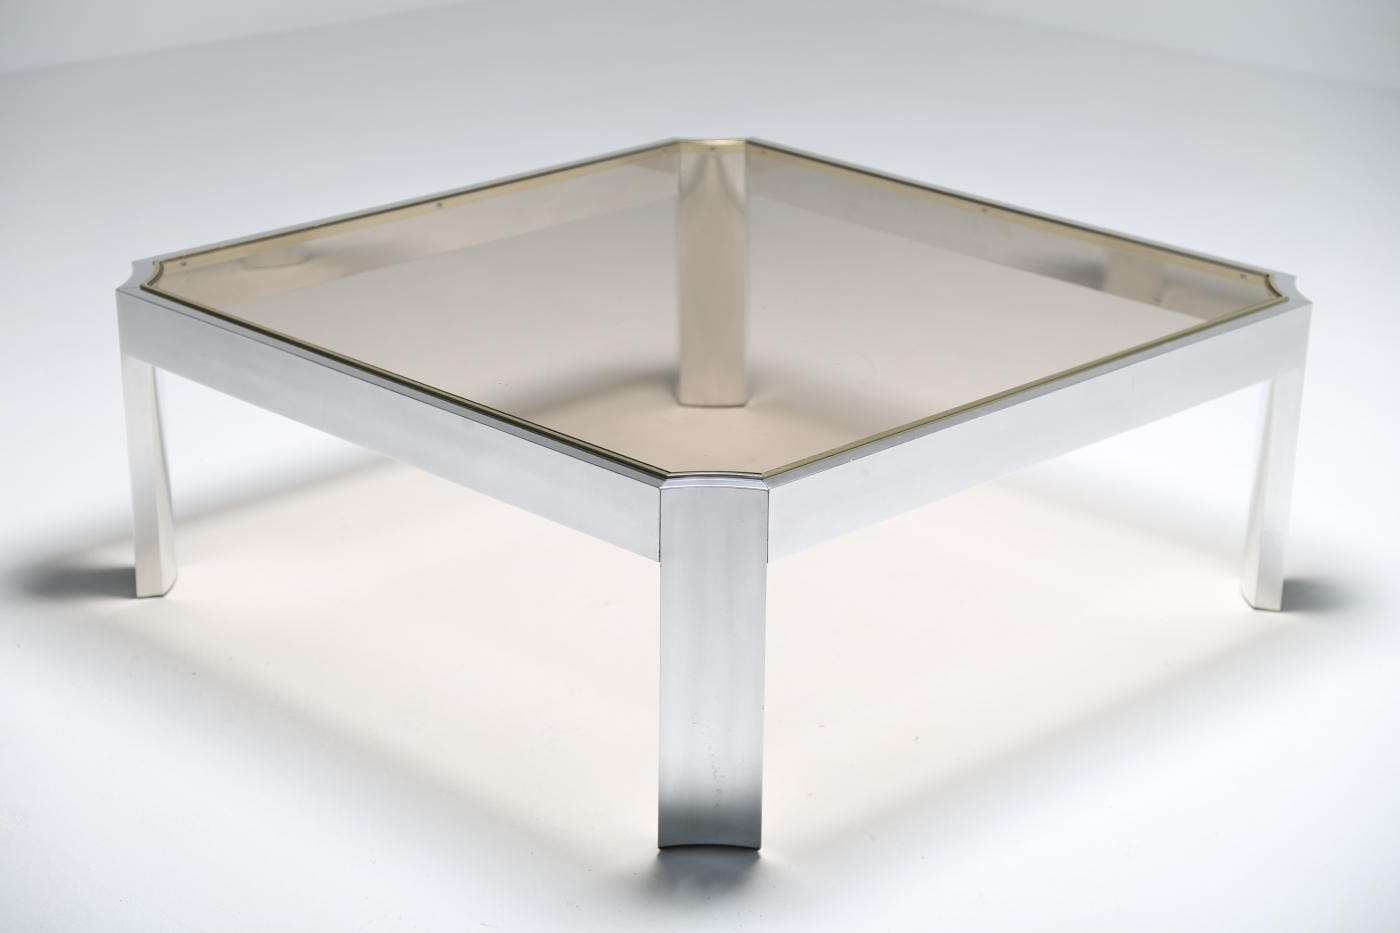 2017 Aluminium Coffee Tables Regarding Mid Century Glass Coffee Table With Aluminium Base For Sale At Pamono (View 2 of 20)